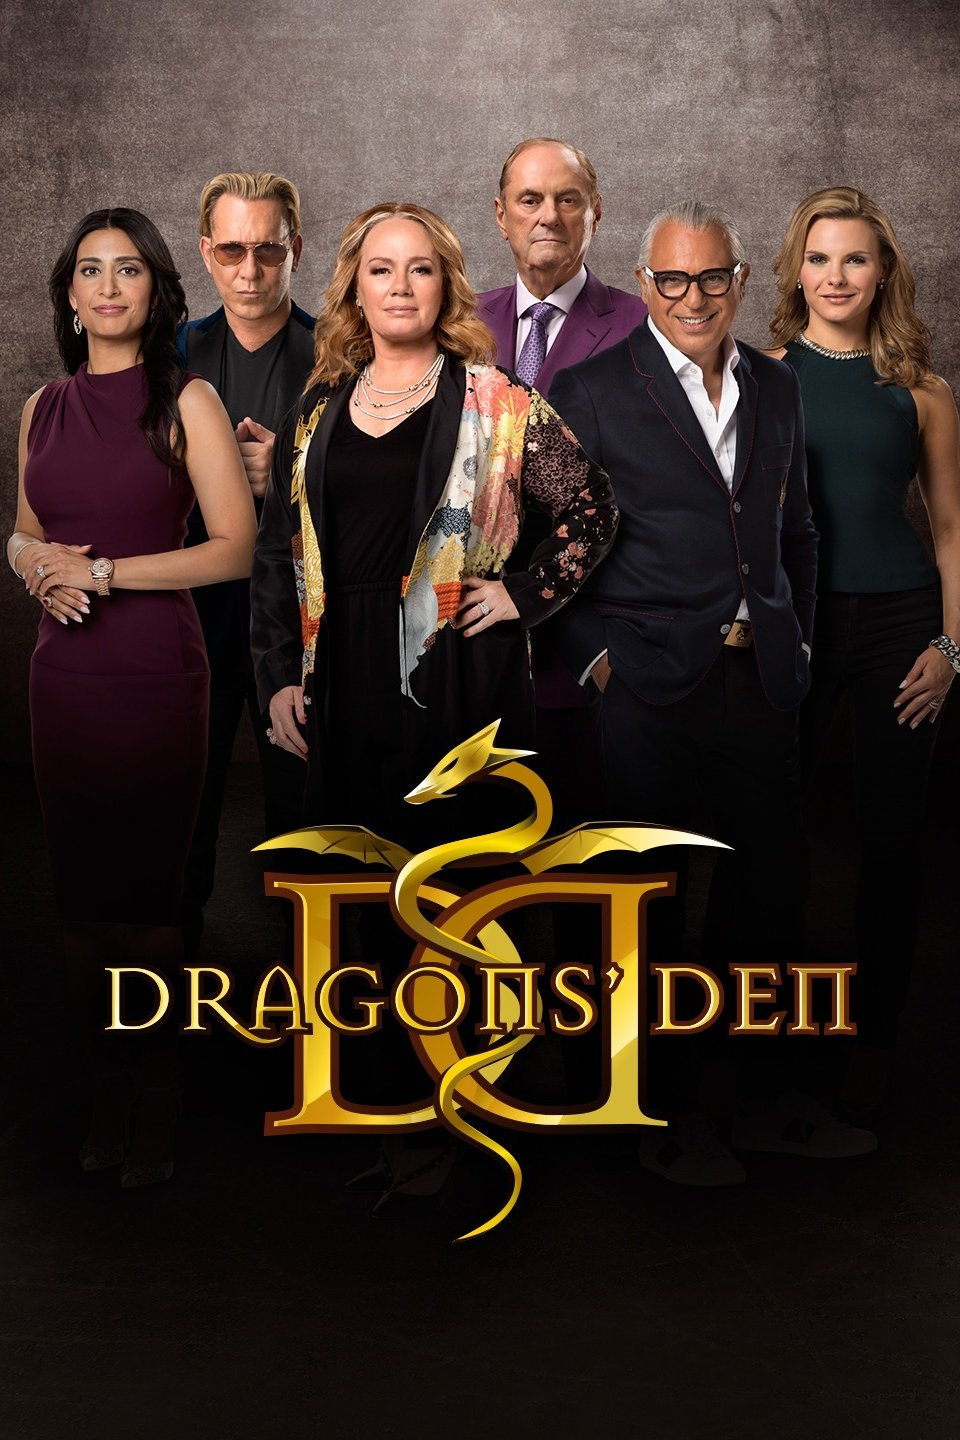 Dragons' Den - Season 16